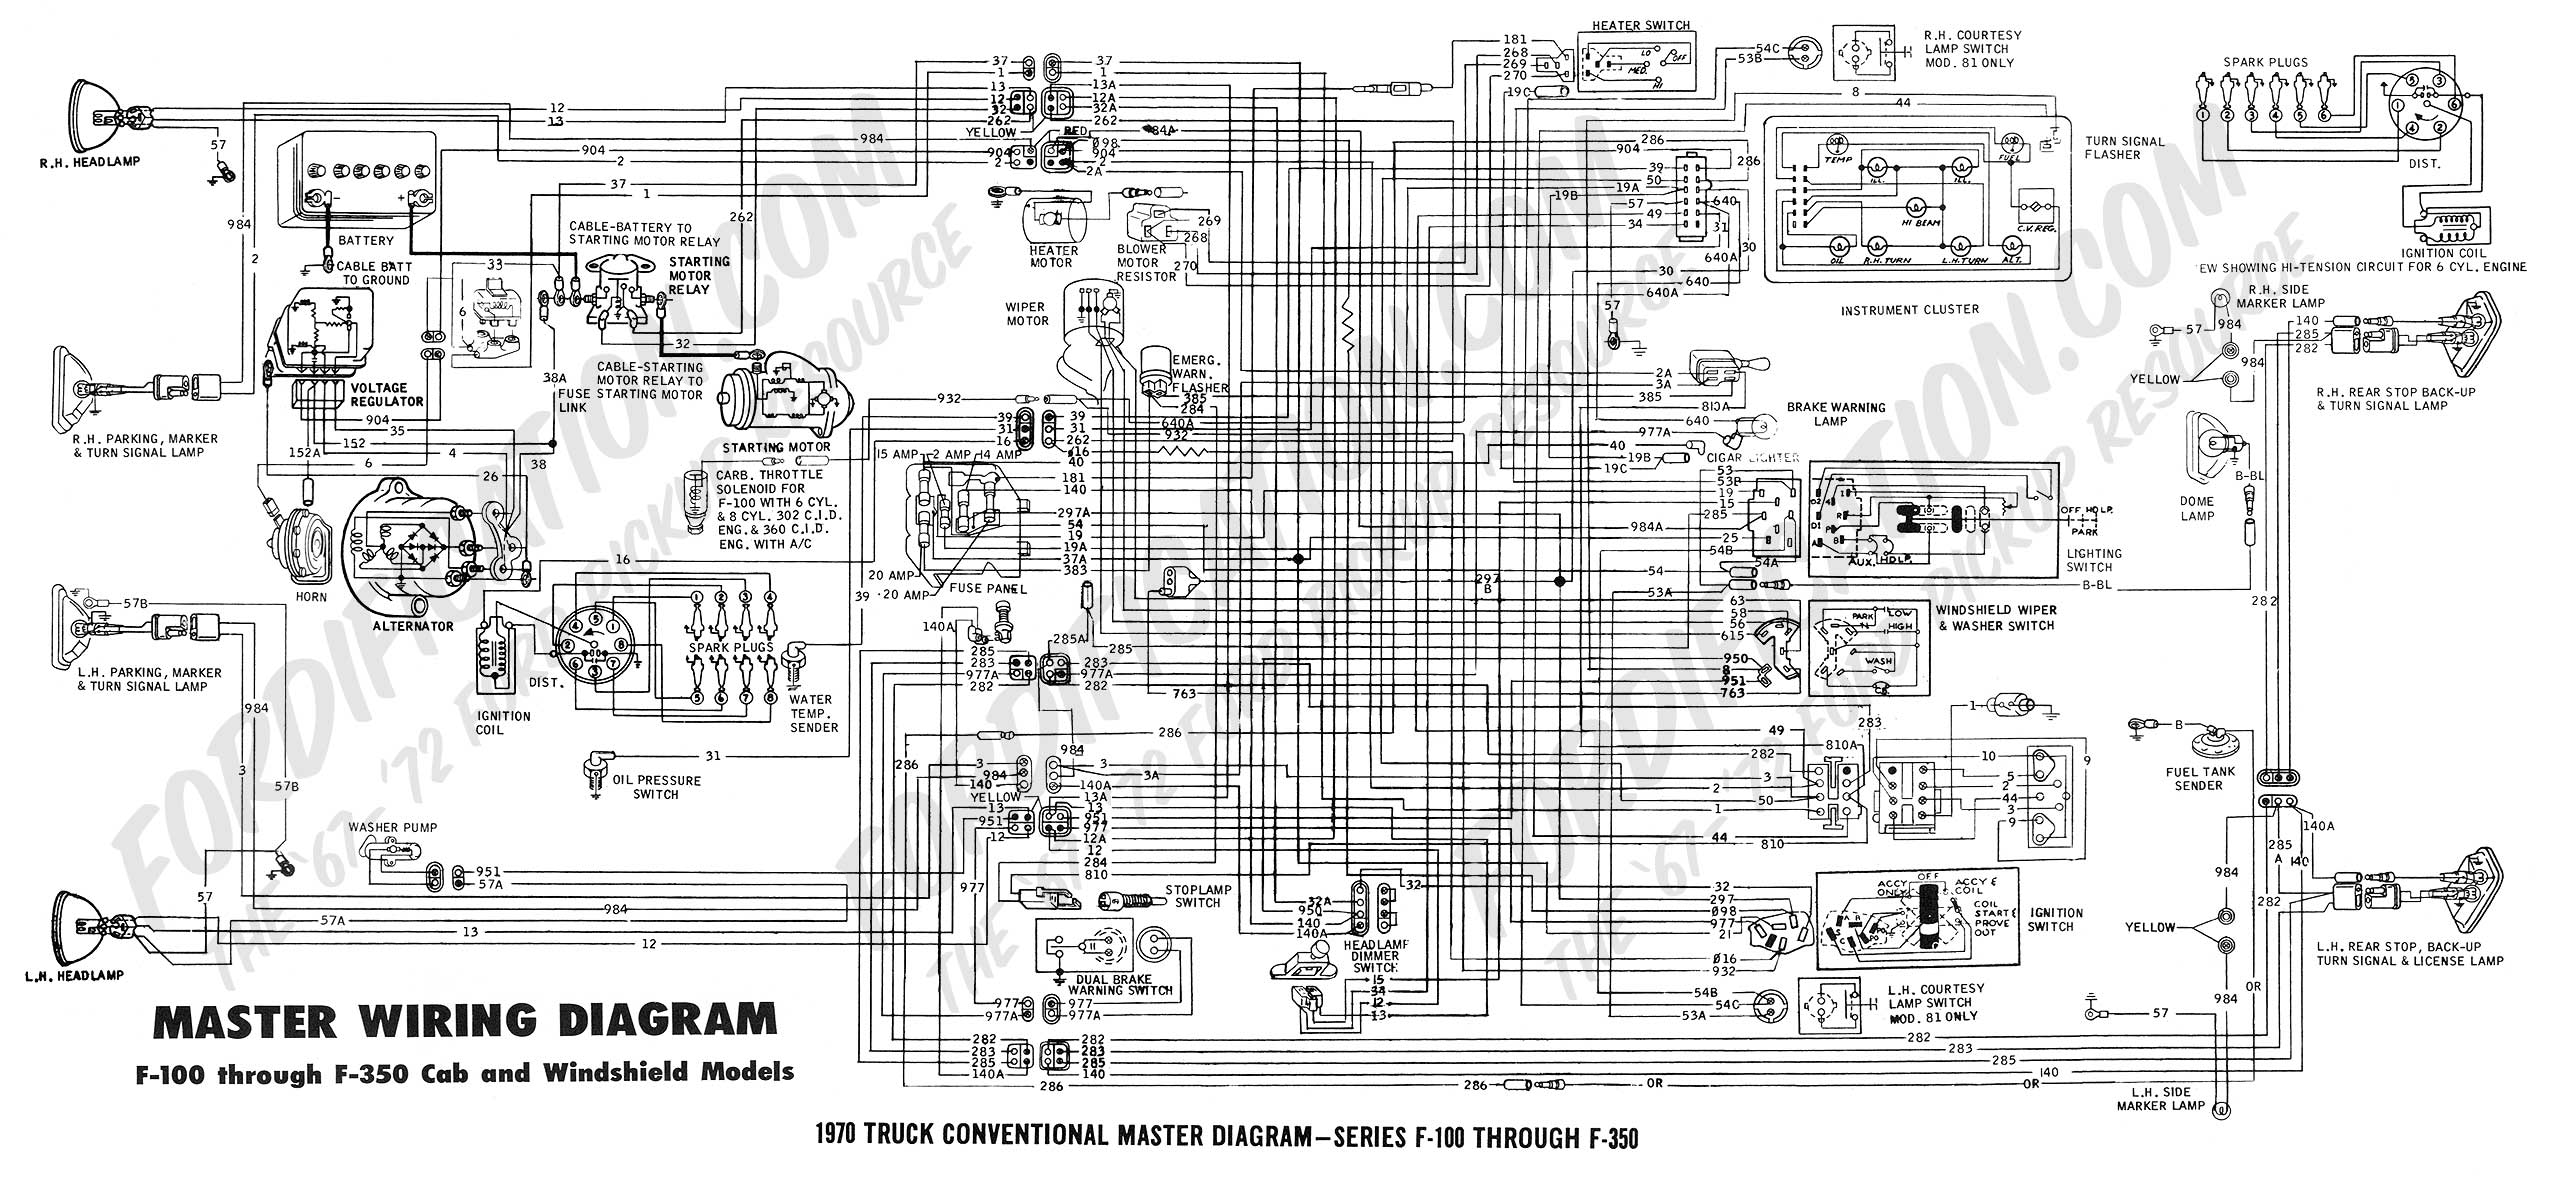 2007 ford f150 wiring diagram eye of hummingbird for f650 pdf fusion